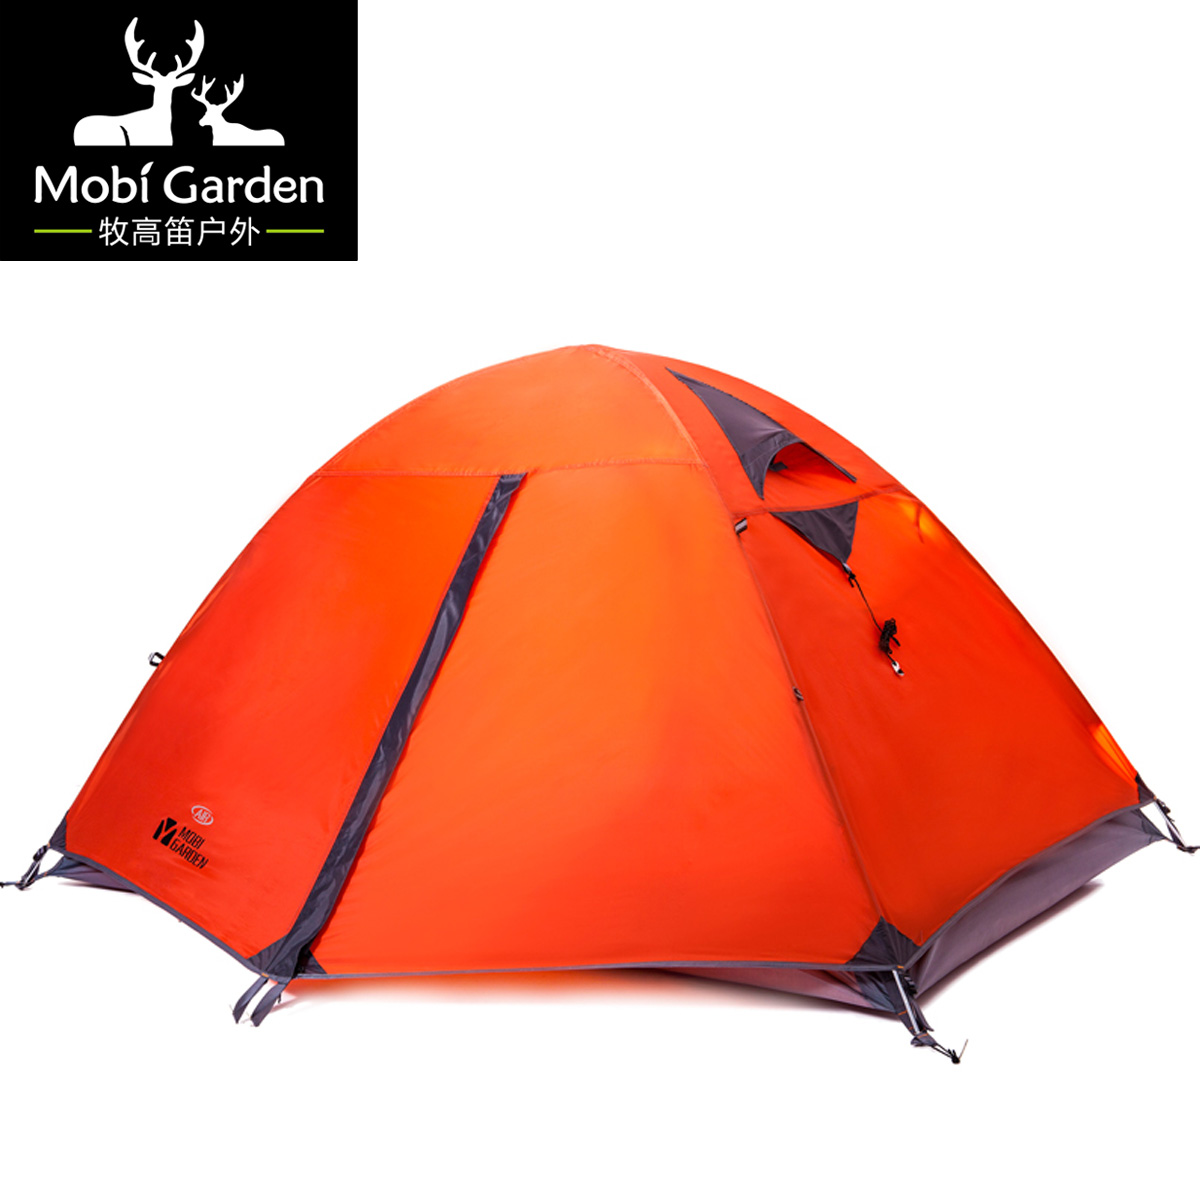 Professional mountaineering tent hiking windproof double layer aluminum breathable camping tent 2air outdoor camping hiking automatic camping tent 4person double layer family tent sun shelter gazebo beach tent awning tourist tent